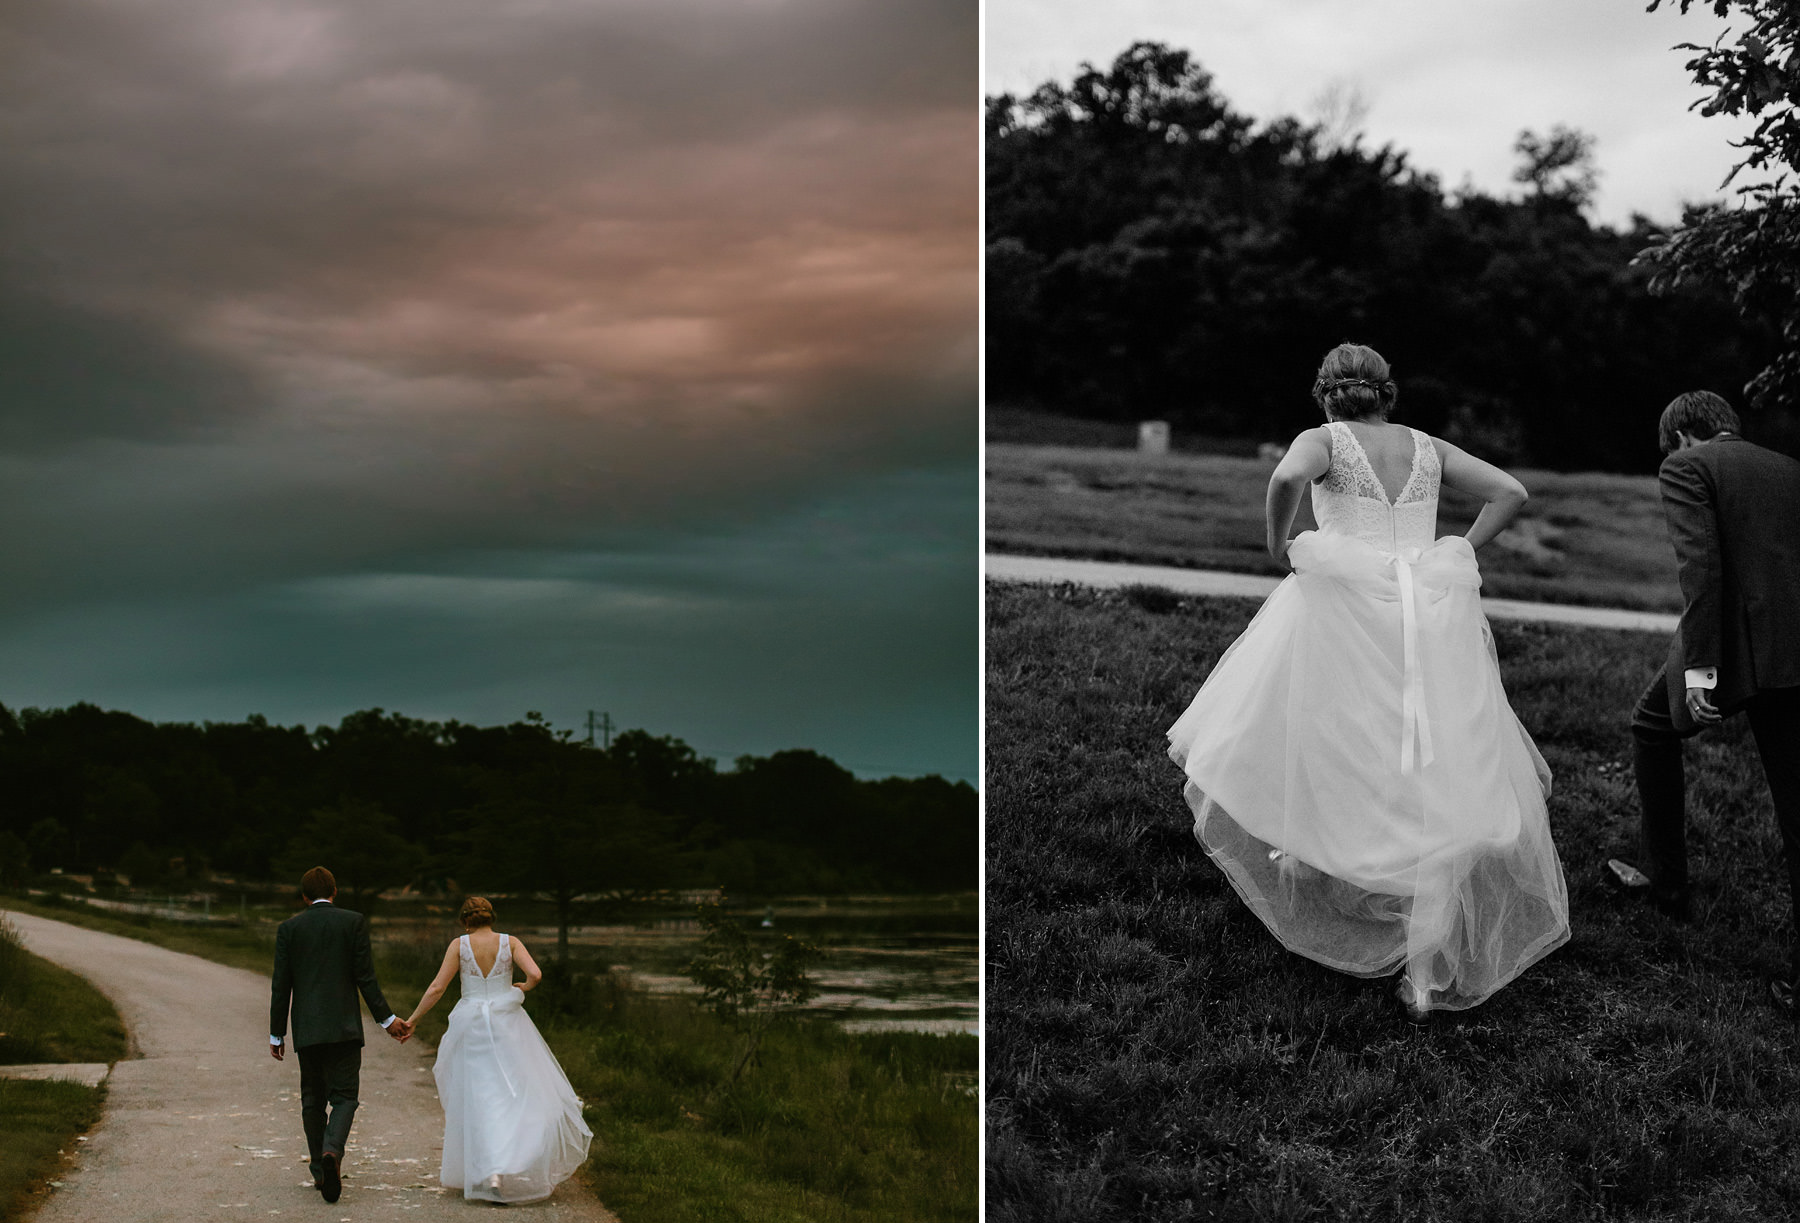 266_Black Hoof Park Lake Lenexa Outdoor Wedding Kansas City, Missouri_Kindling Wedding Photography.JPG